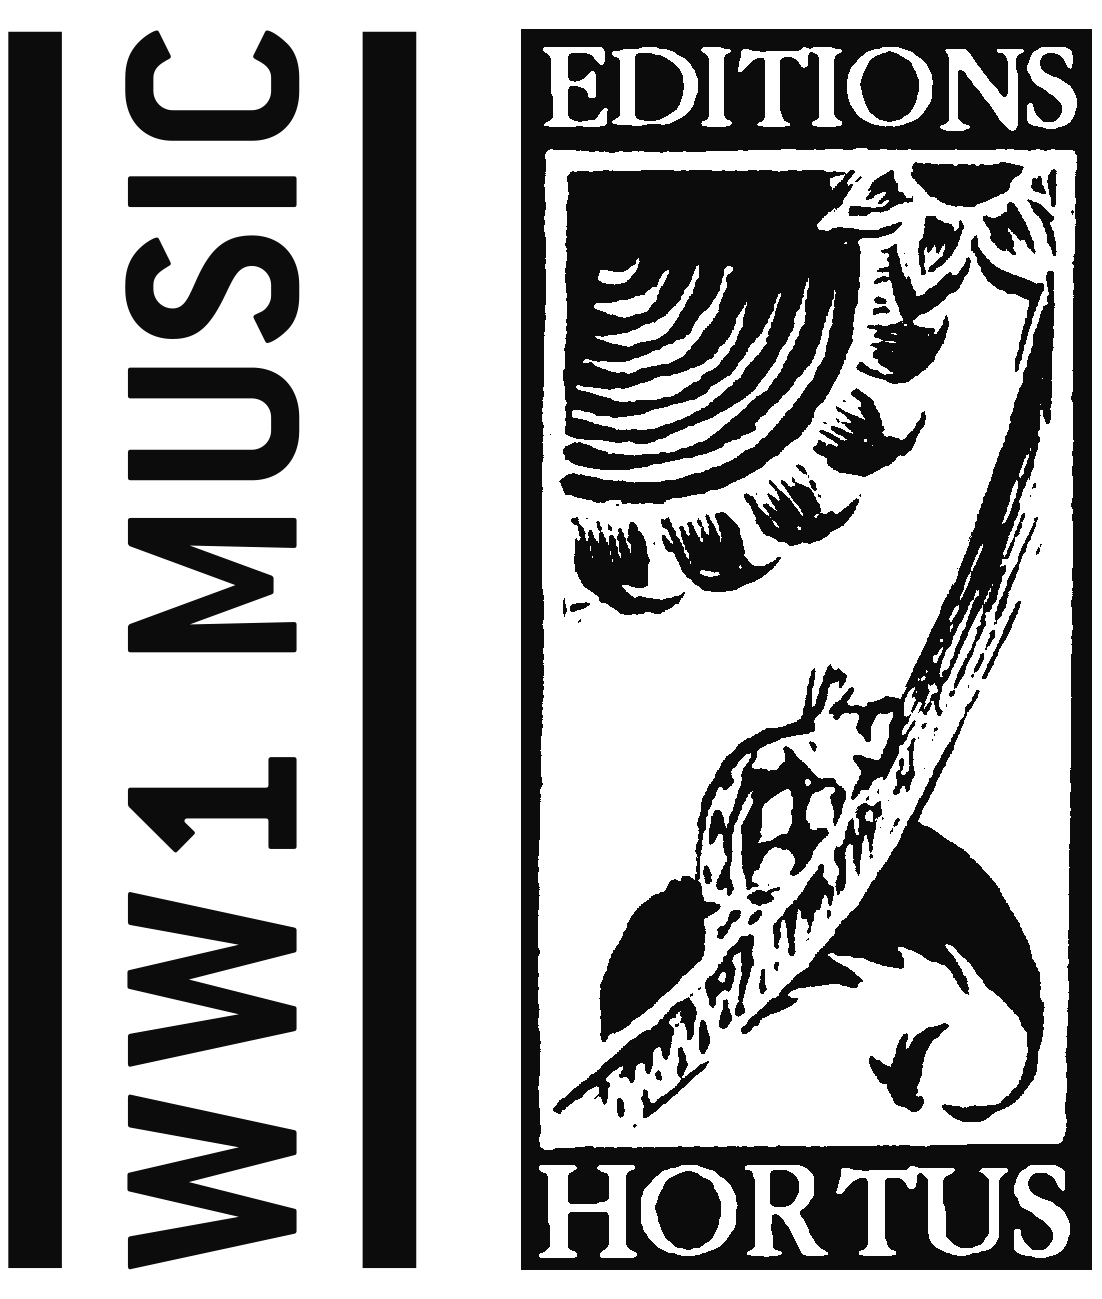 Editions Hortus releases a Busoni CD